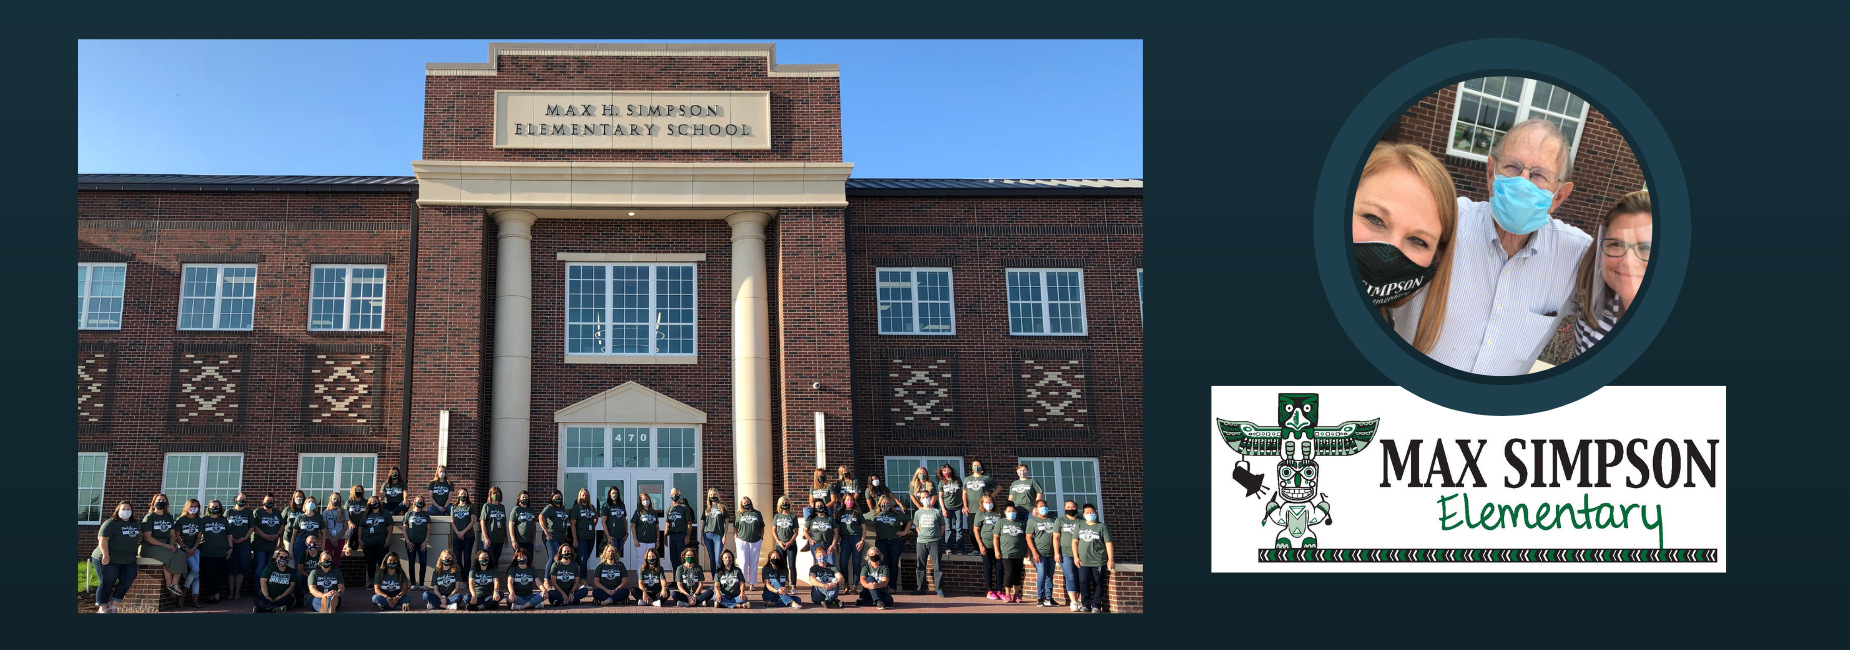 entire staff posing together in front of campus entrance and principal, assistant principal with campus namesake